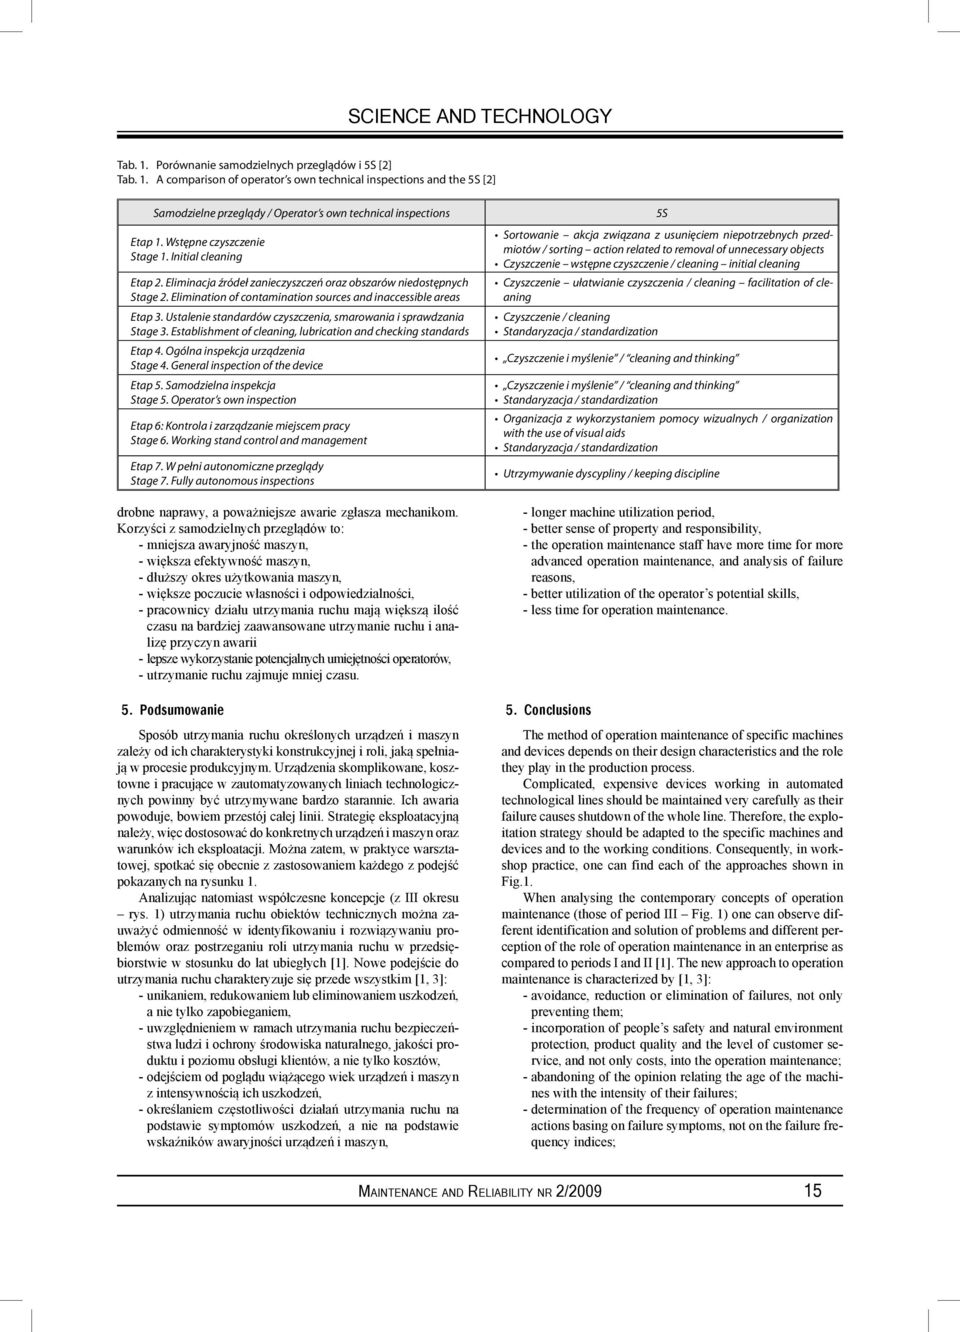 Ustalenie standardów czyszczenia, smarowania i sprawdzania Stage 3. Establishment of cleaning, lubrication and checking standards Etap 4. Ogólna inspekcja urządzenia Stage 4.